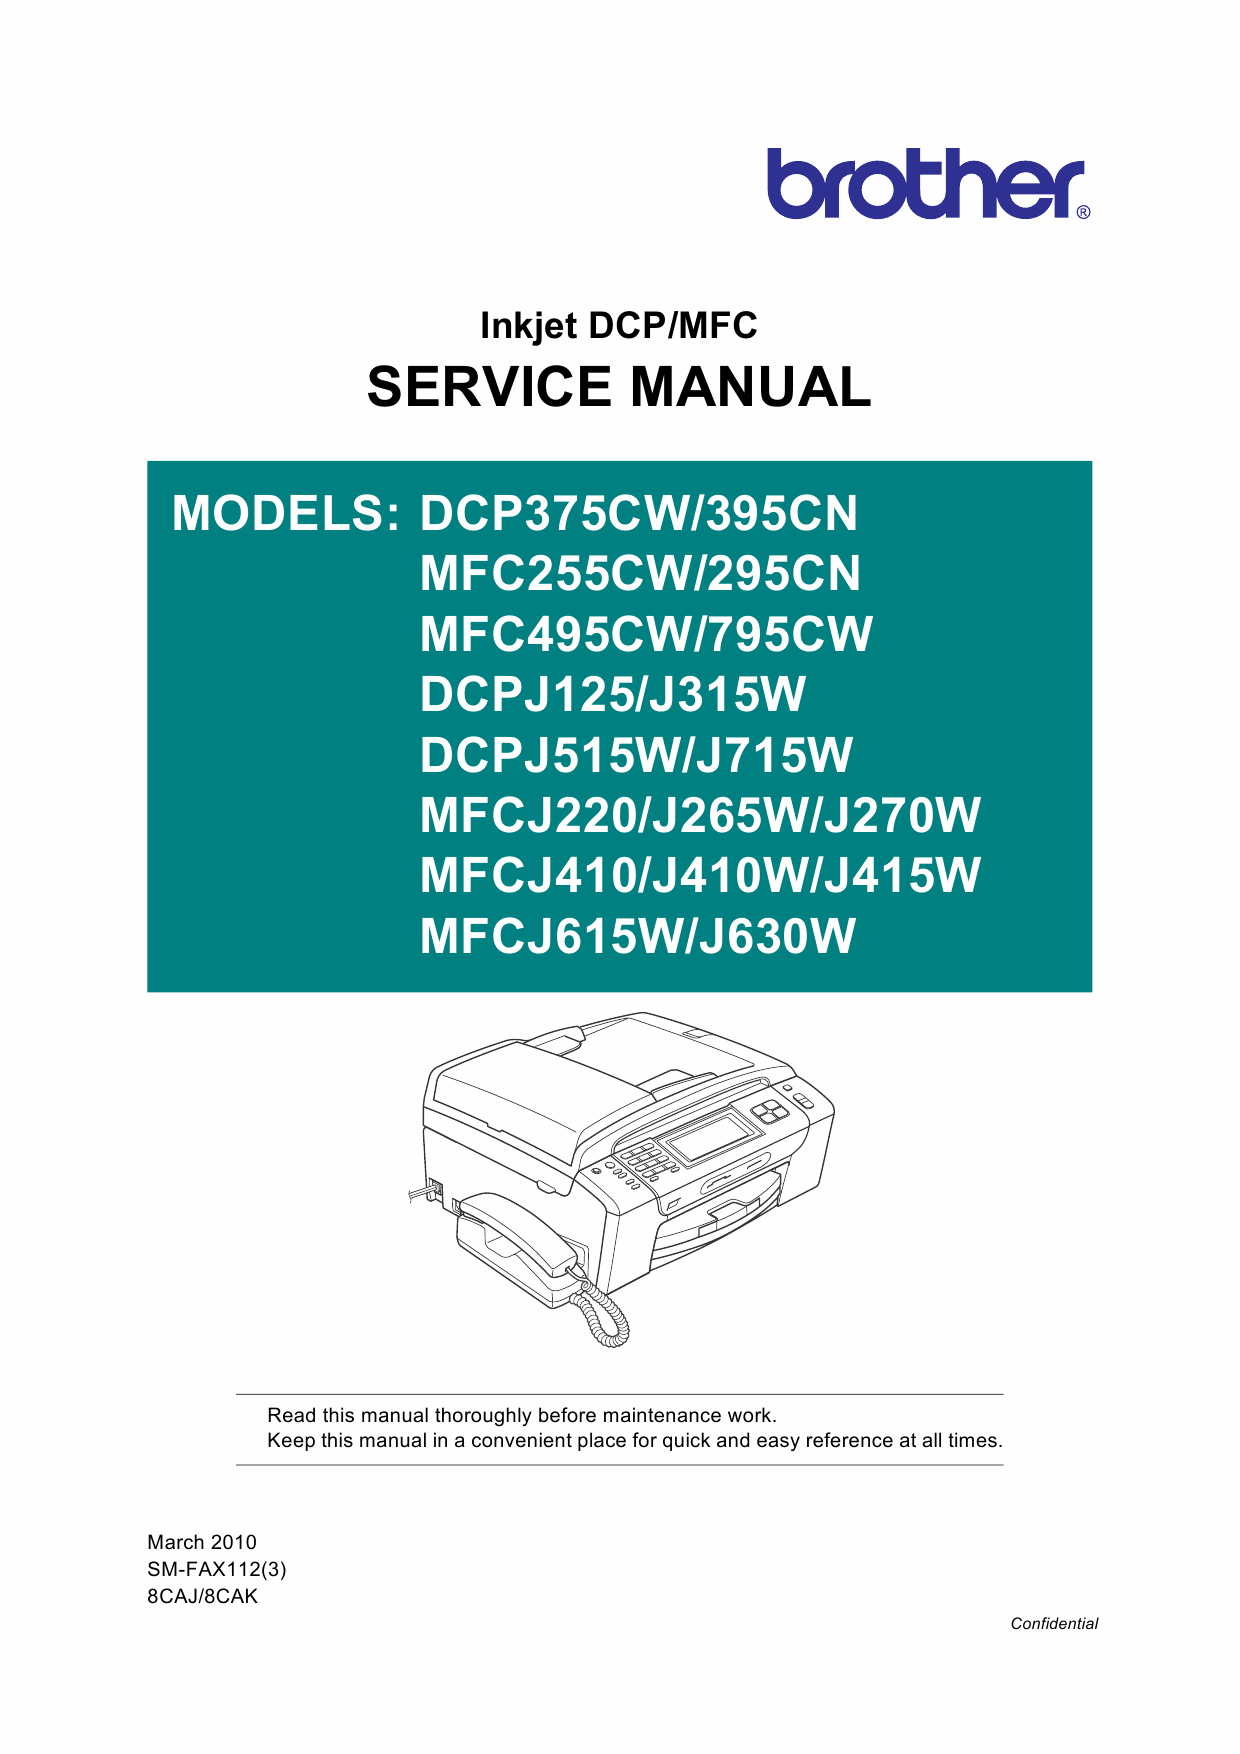 Brother Inkjet-MFC 255 295 495 795 CW-CN DCP375CW 395CN Service Manual-1